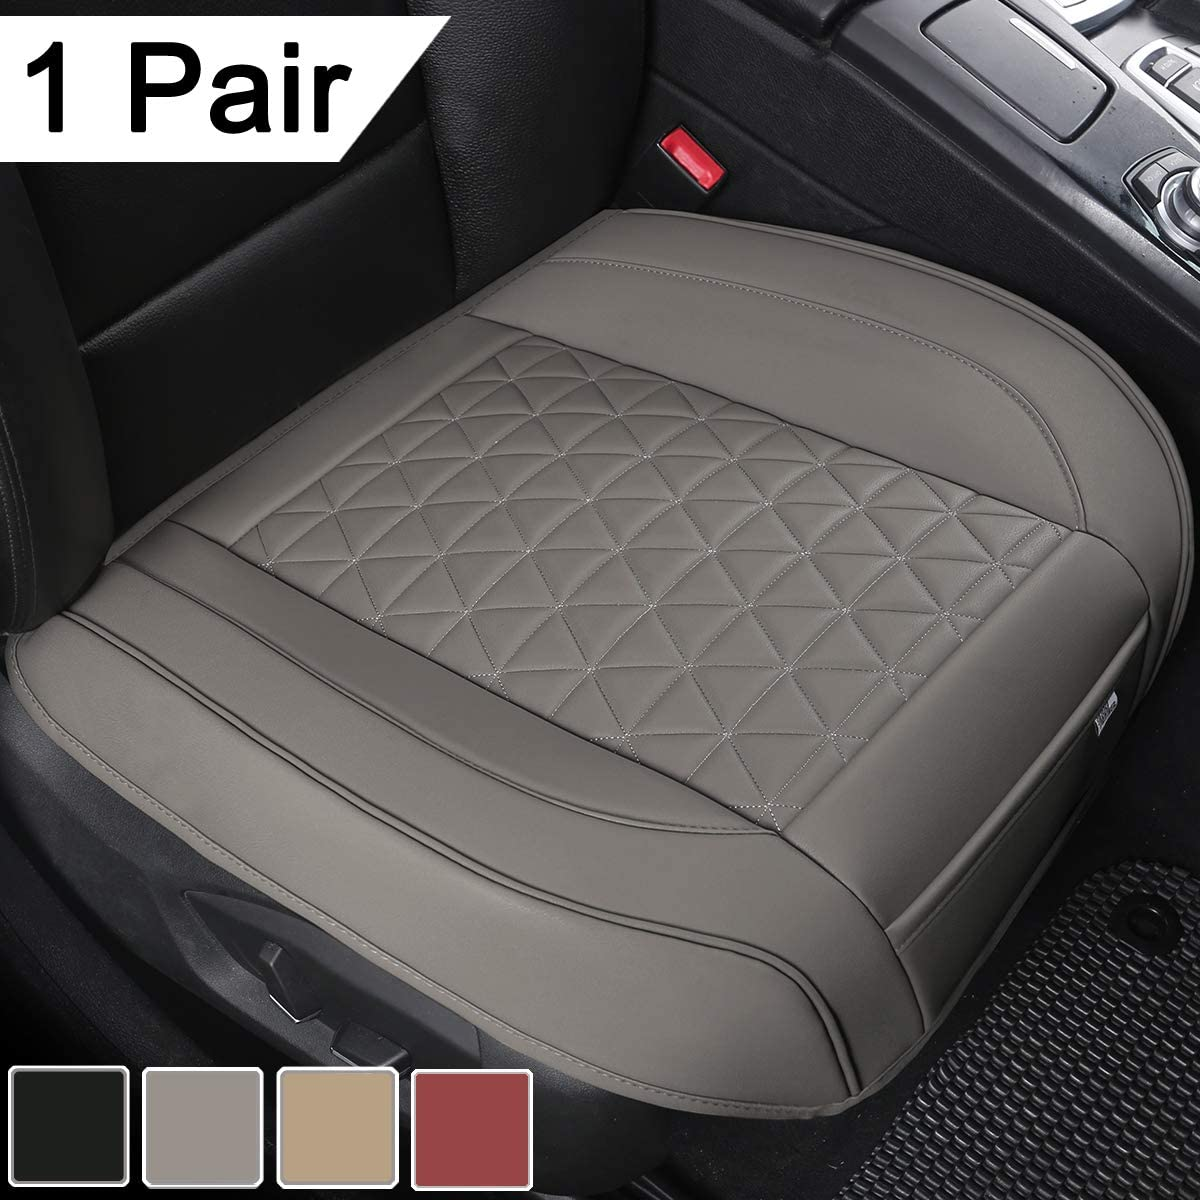 AUDI Q5 SQ5 12-ON HEAVY DUTY WATERPROOF GREY SINGLE CAR SEAT COVER